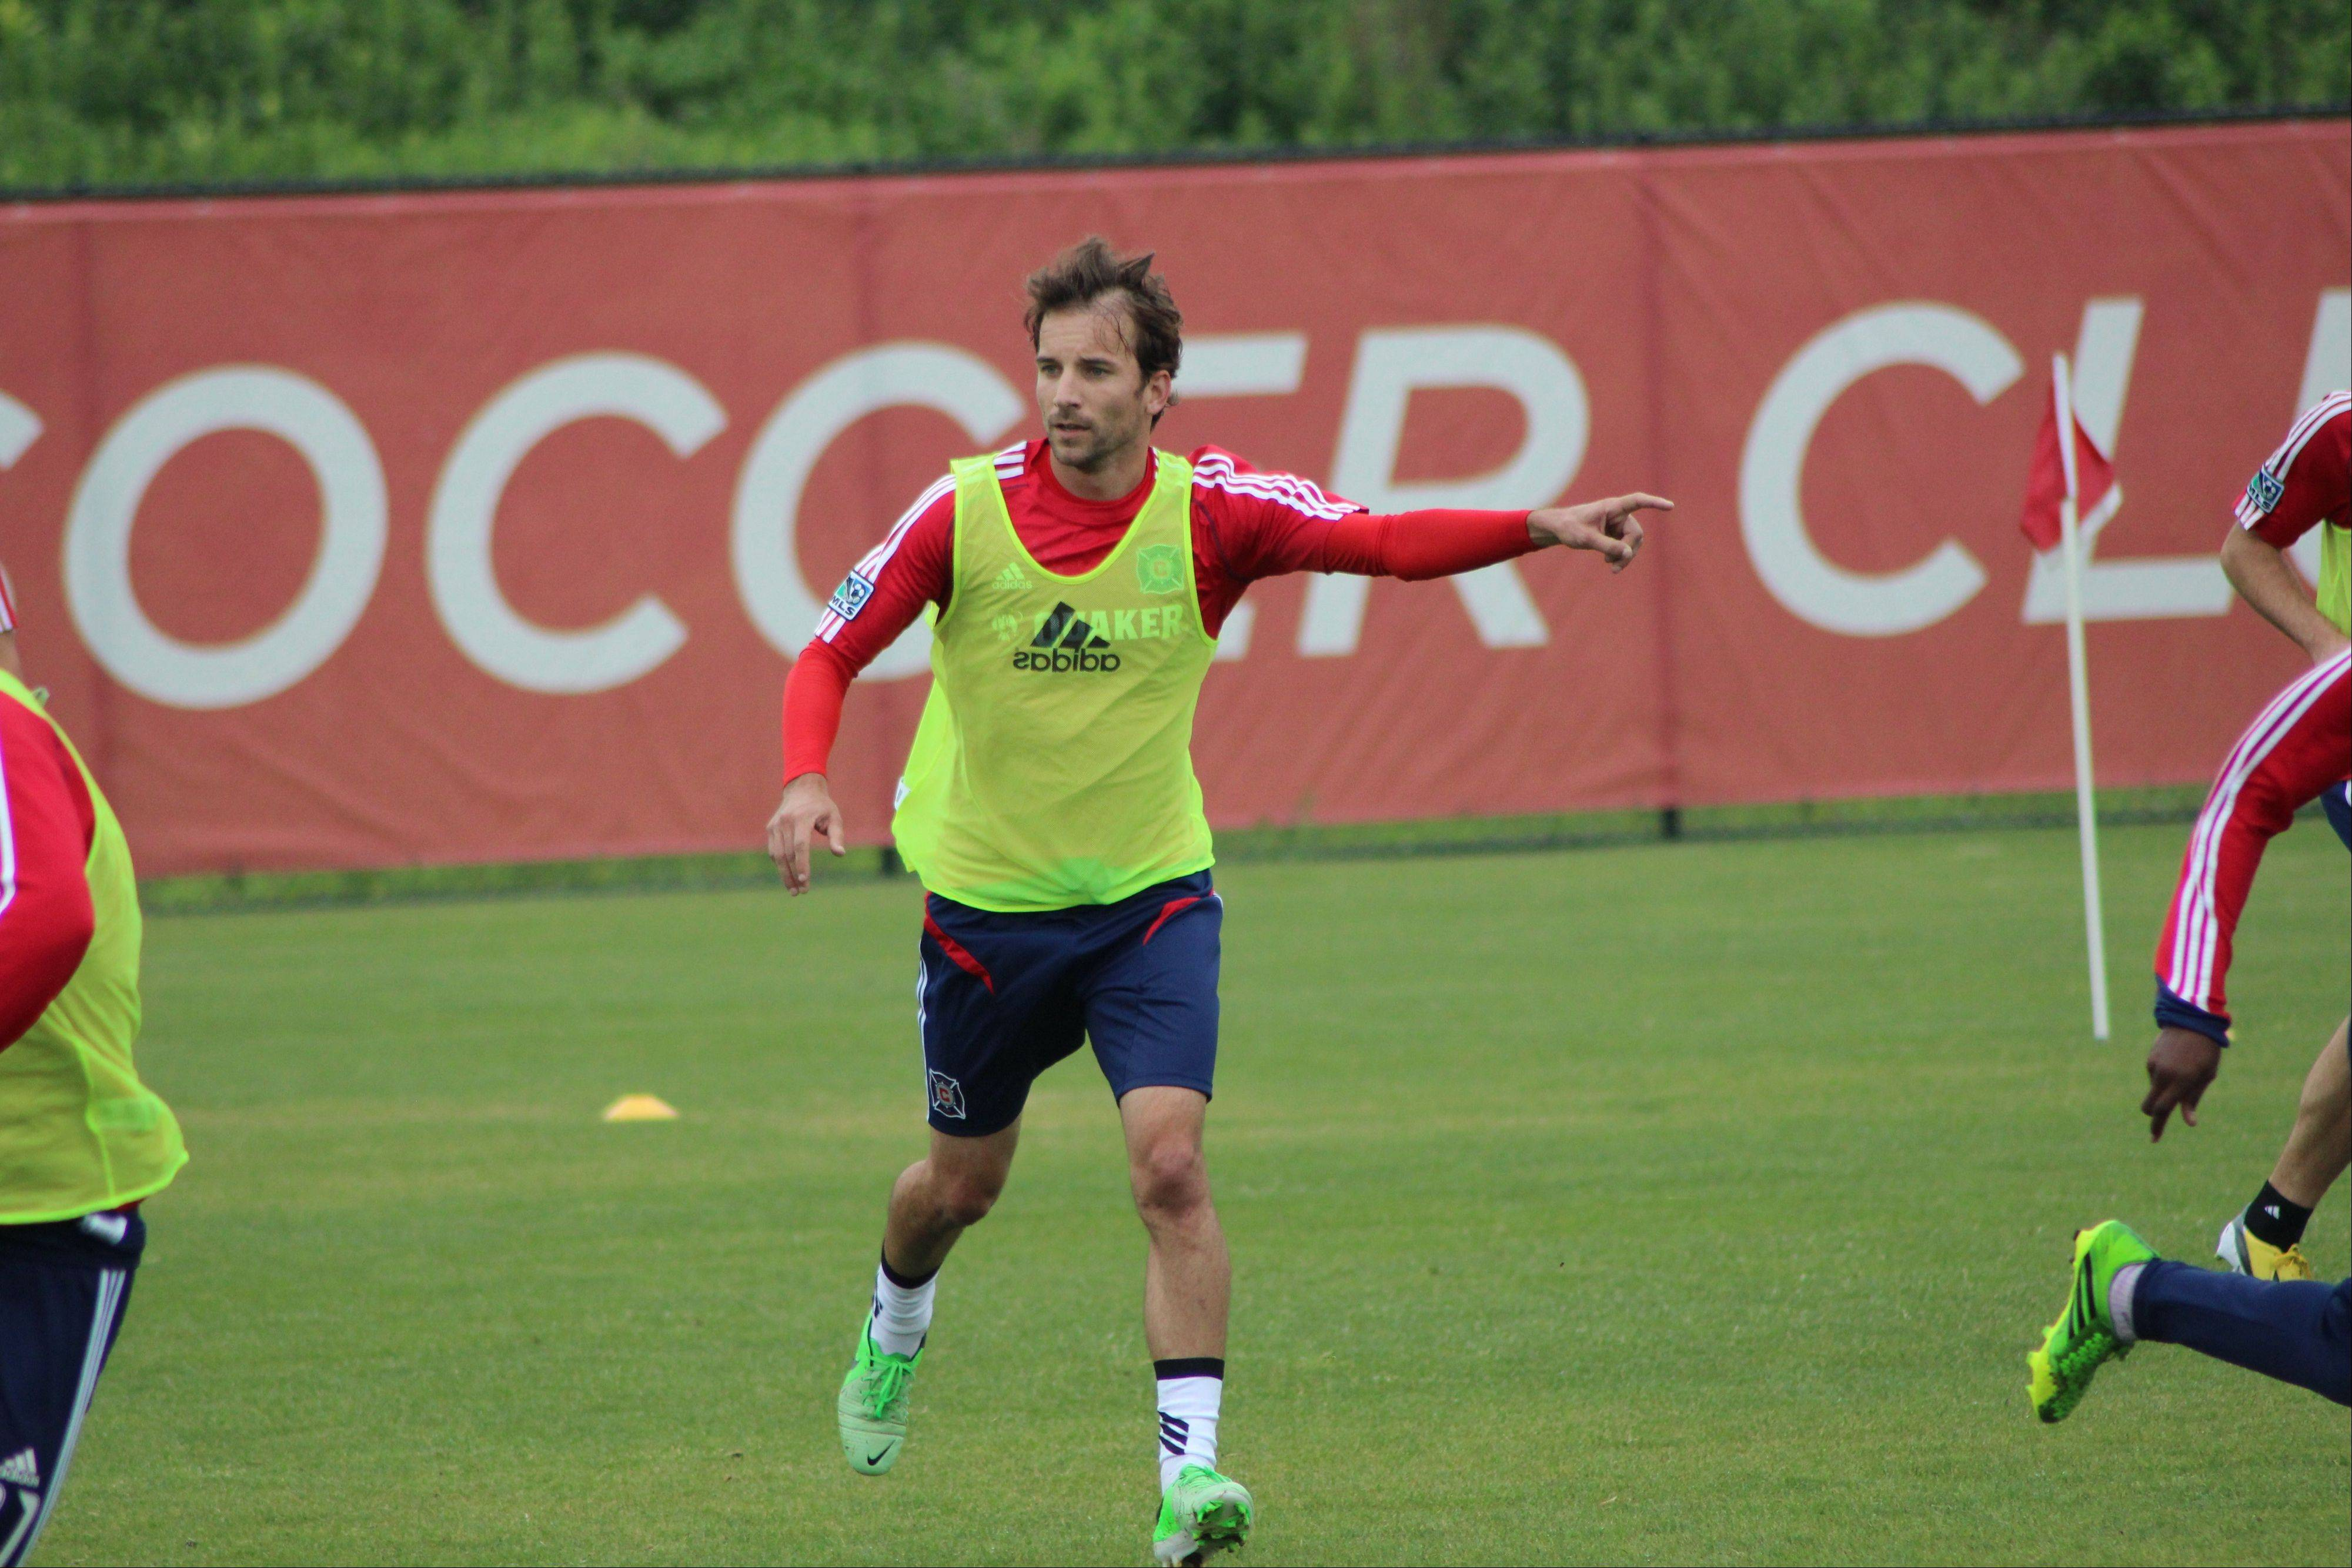 A versatile player in his MLS career, Mike Magee can play several positions for the Chicago Fire.